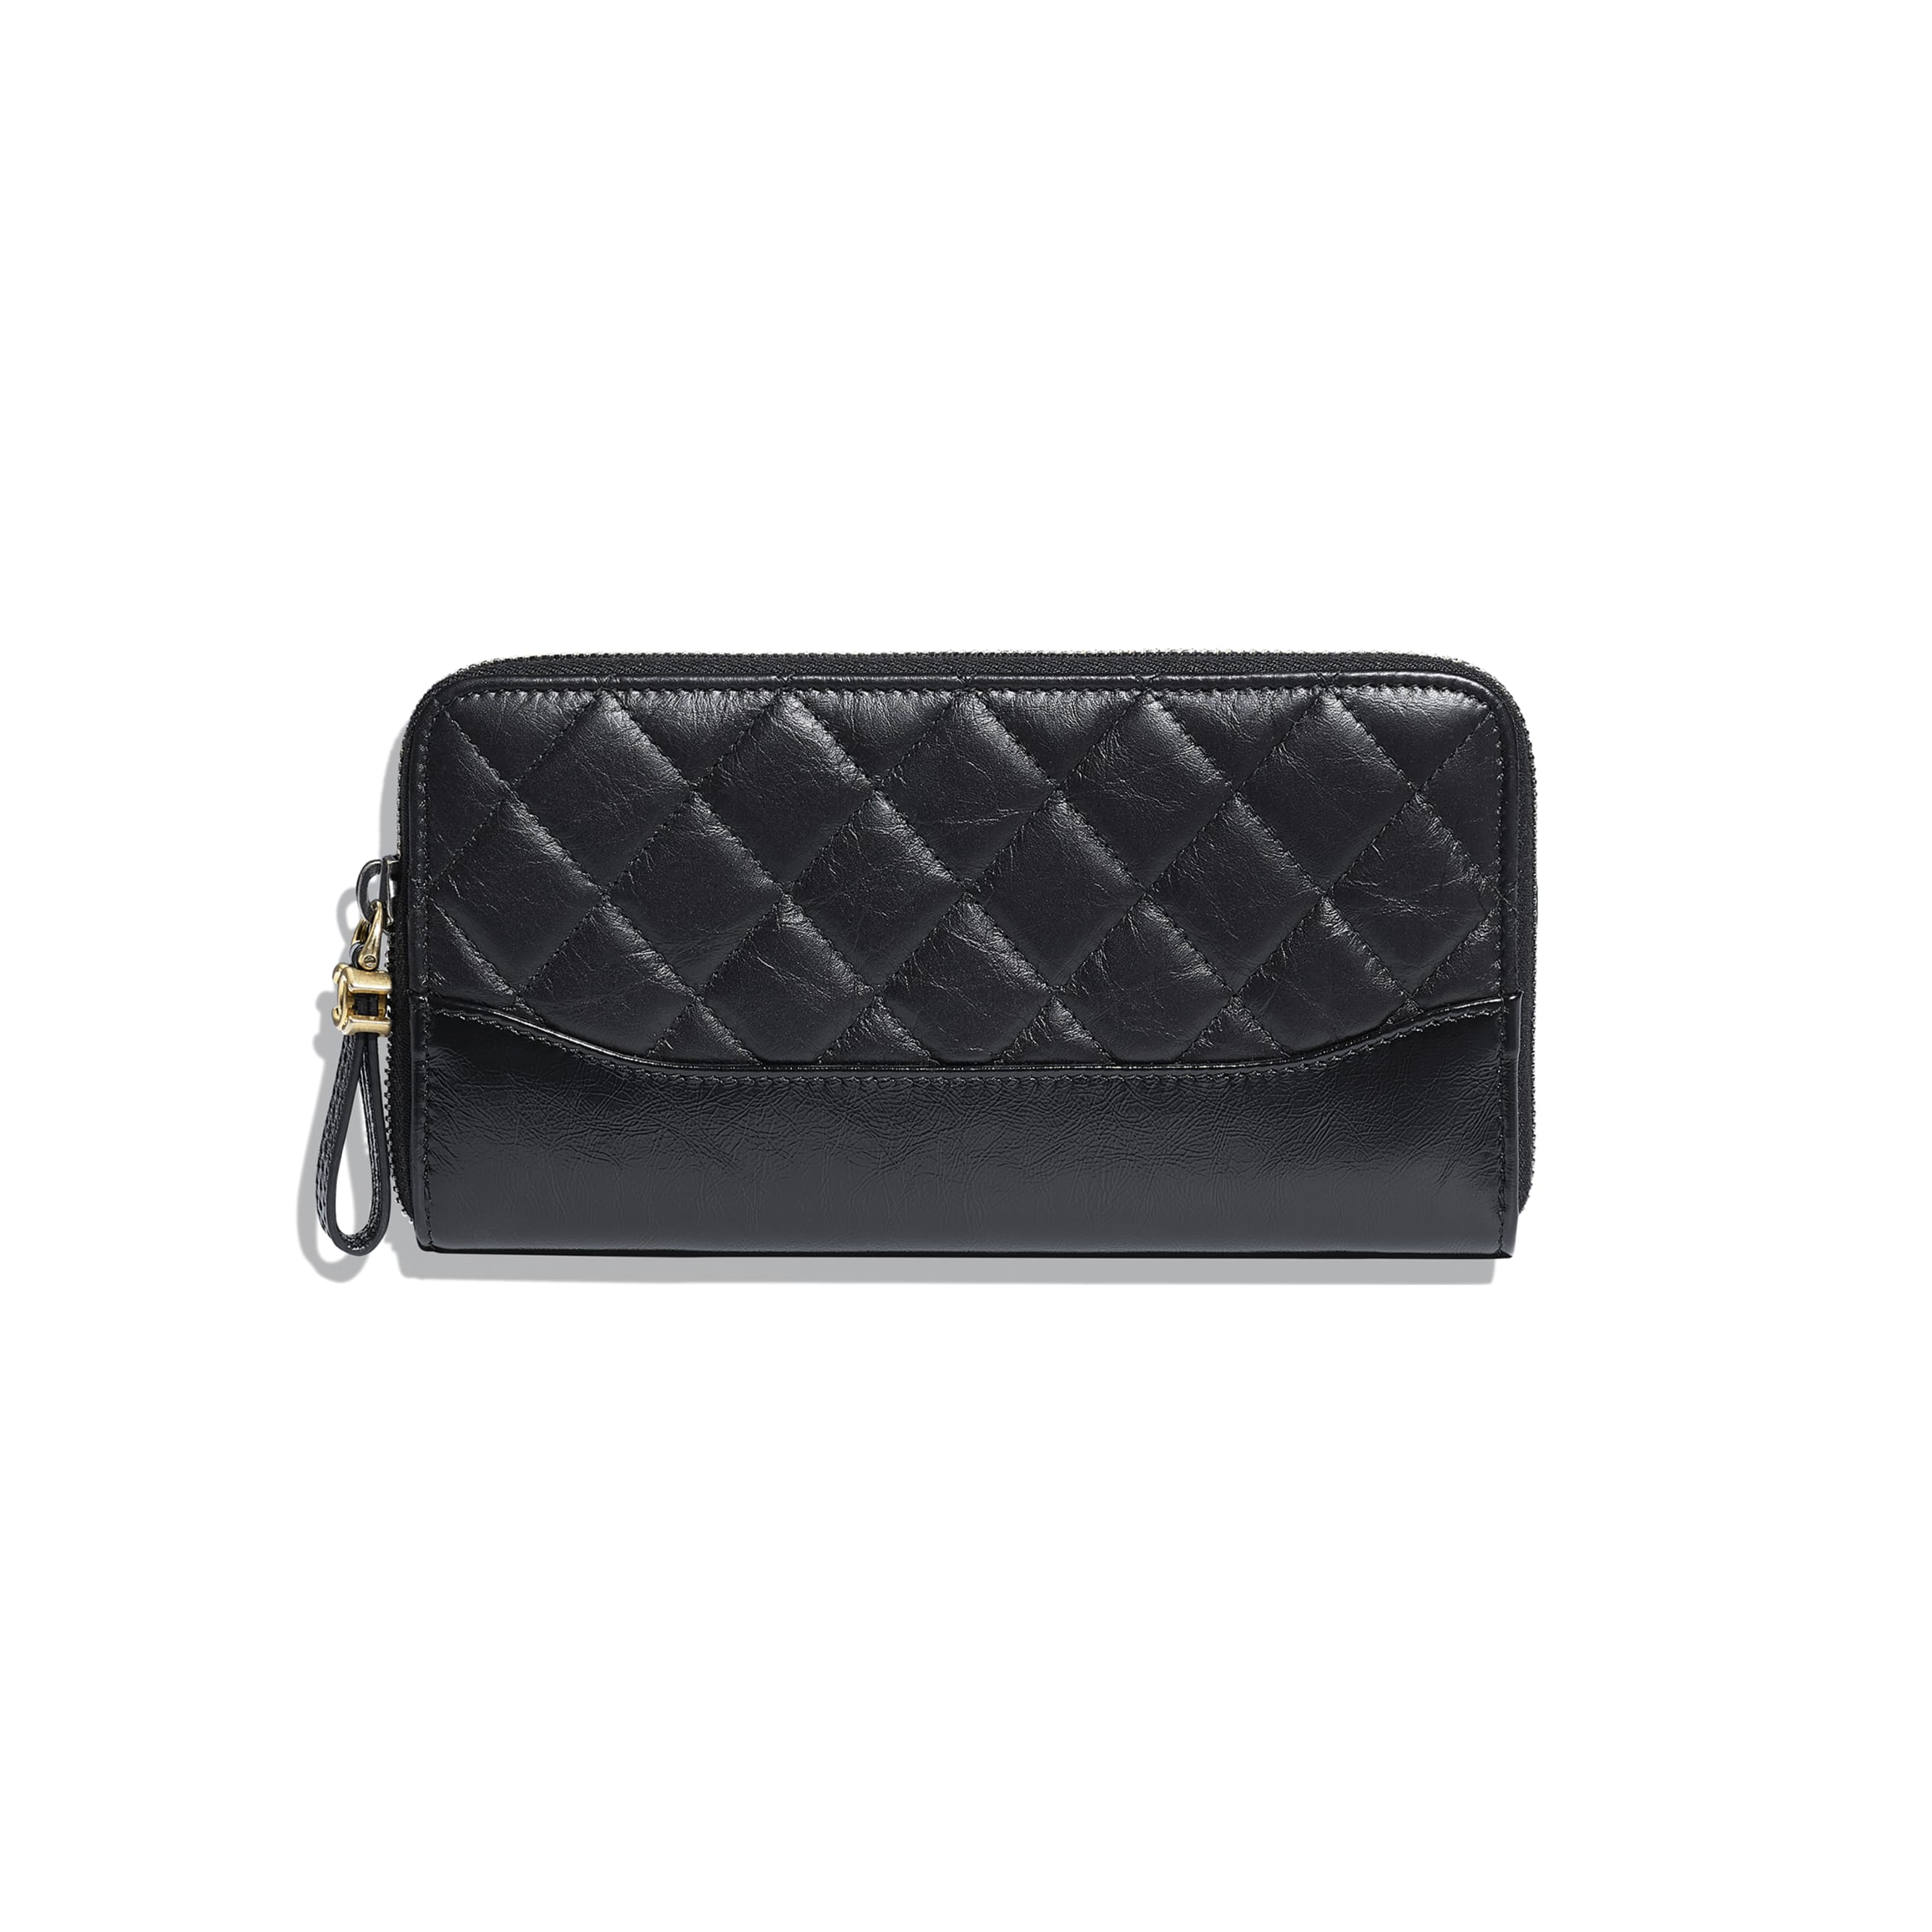 Long Zipped Wallet - Black - Aged Calfskin, Smooth Calfskin, Gold-Tone, Silver-Tone & Ruthenium-Finish Metal - CHANEL - Default view - see standard sized version